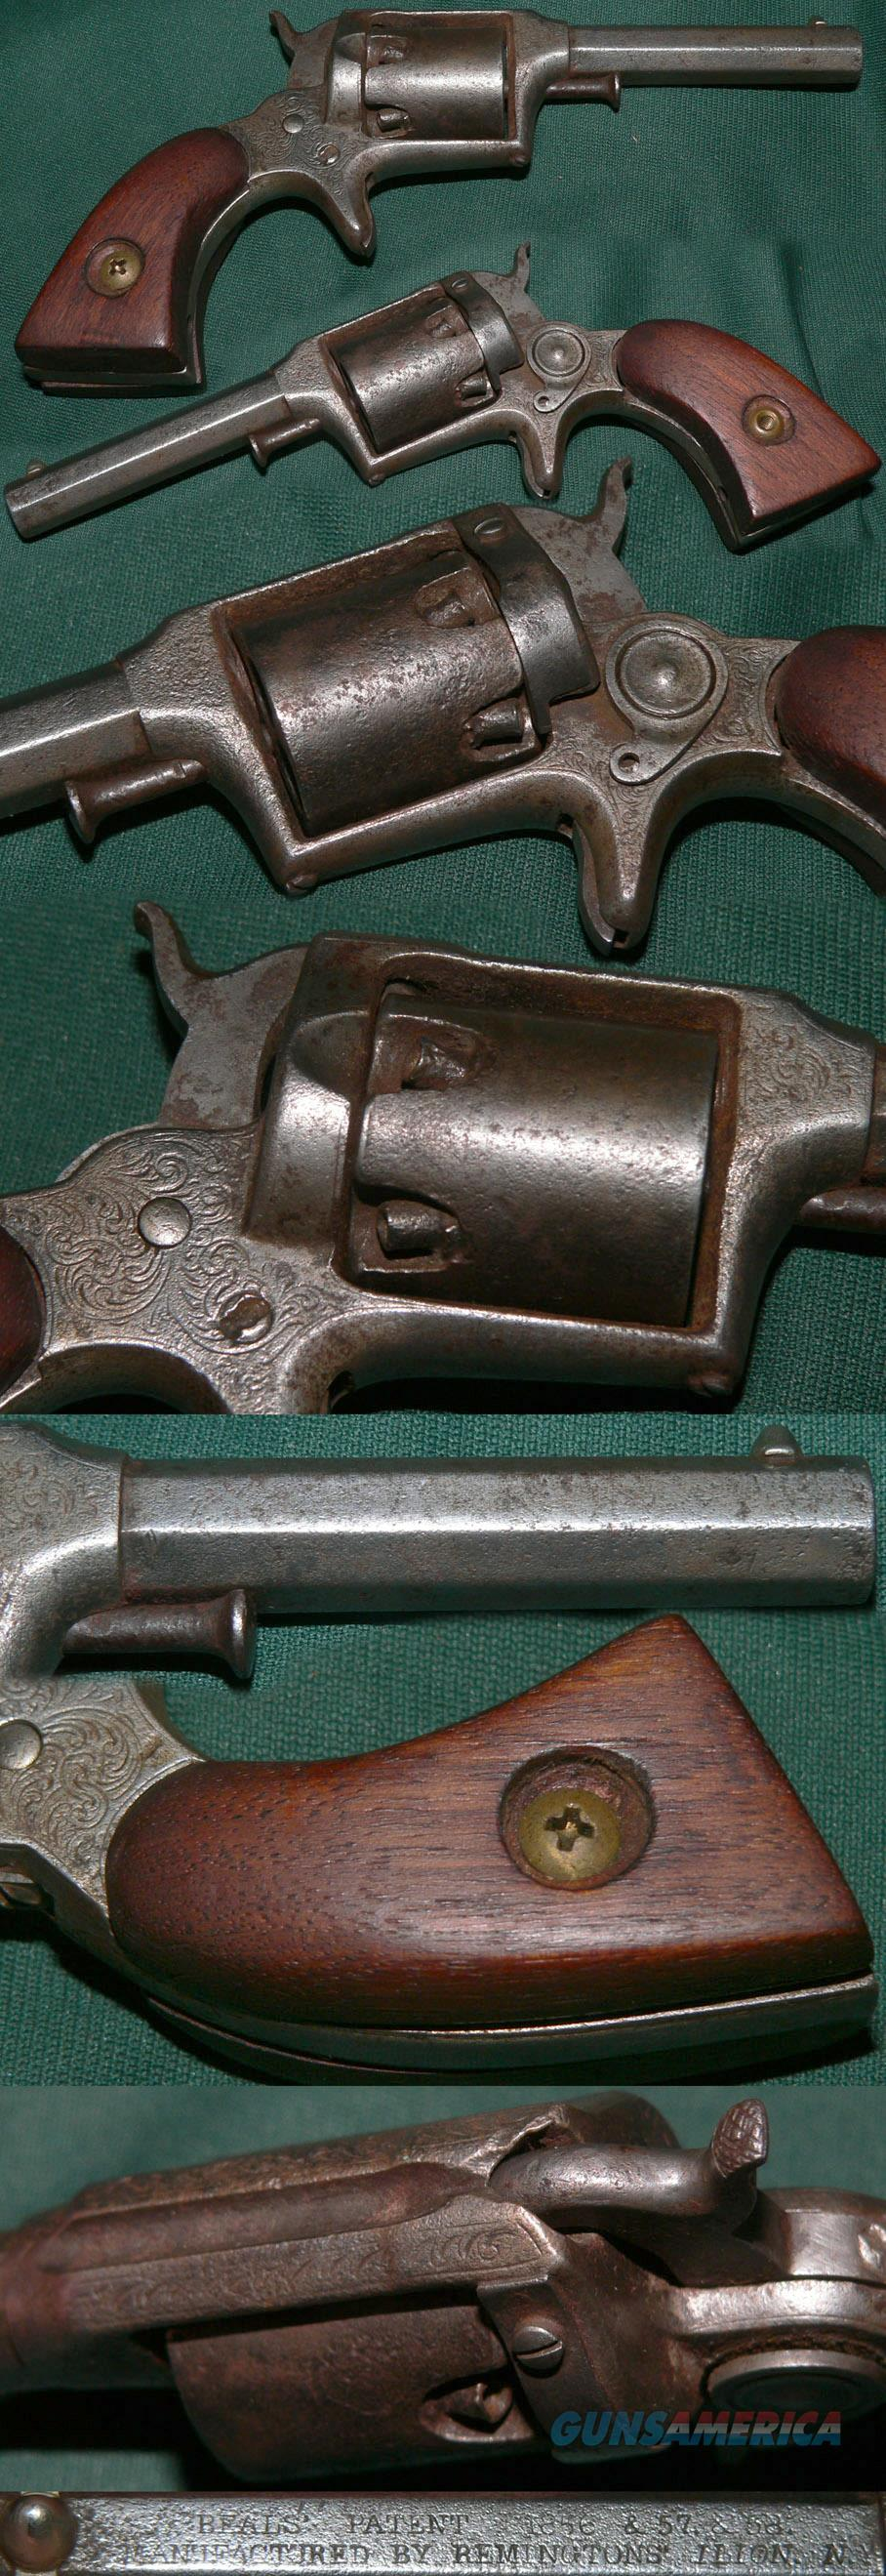 Remington-Beals 2nd Model percussion pocket revolver  Guns > Pistols > Remington Pistols - Pre-1899